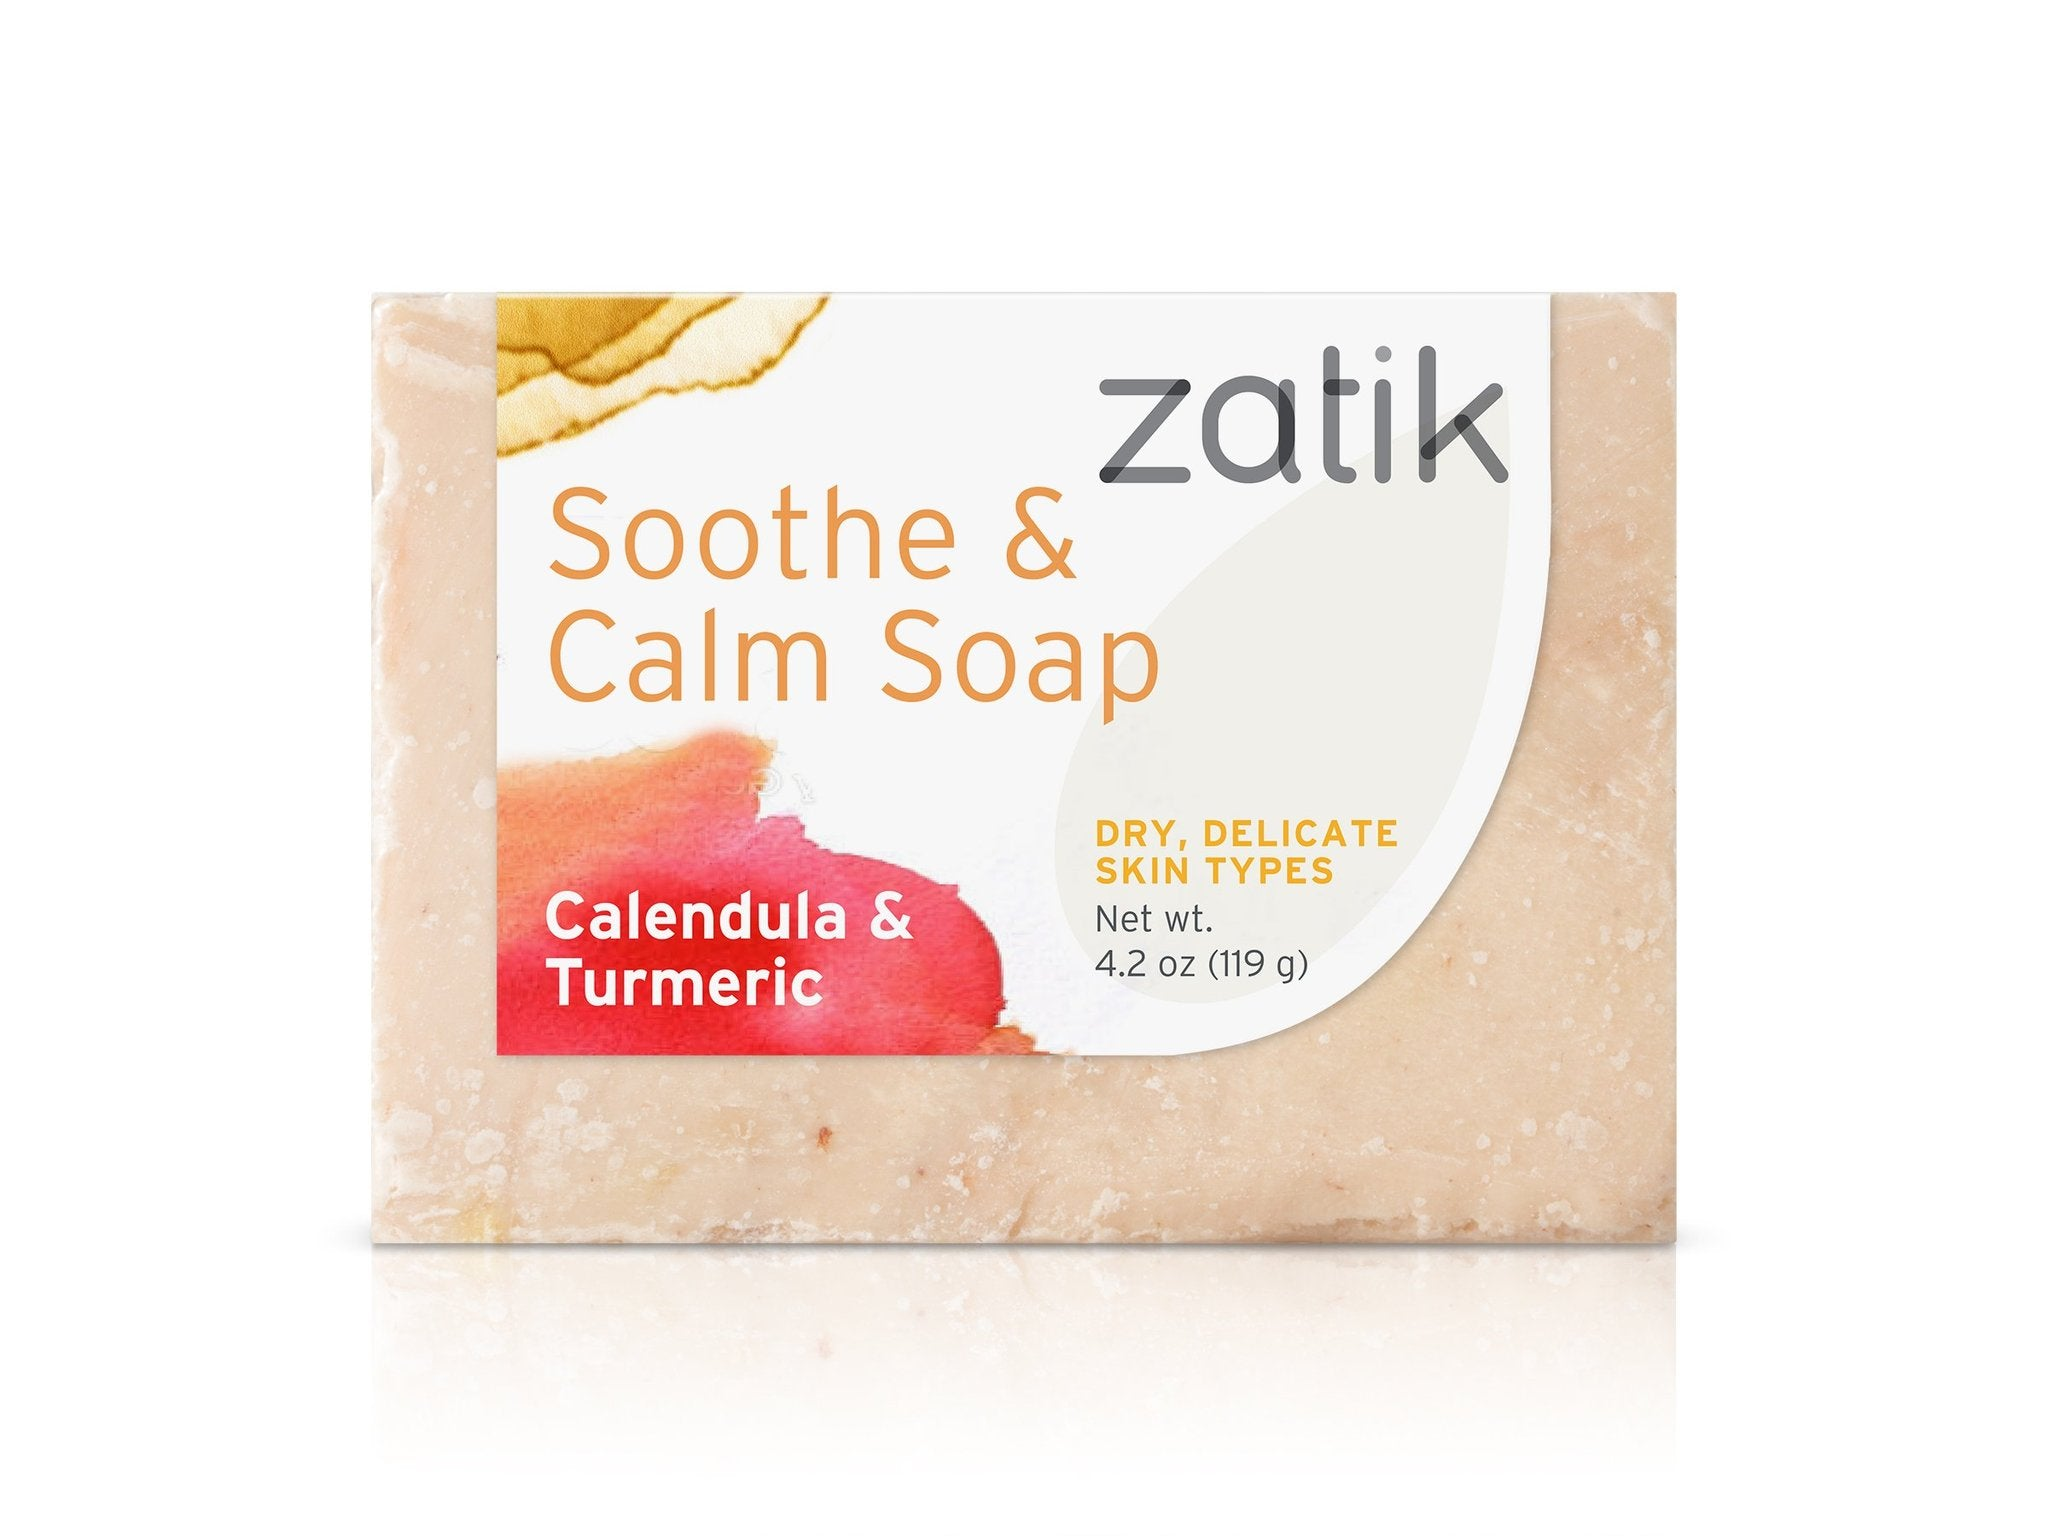 Soothe & Calm Soap